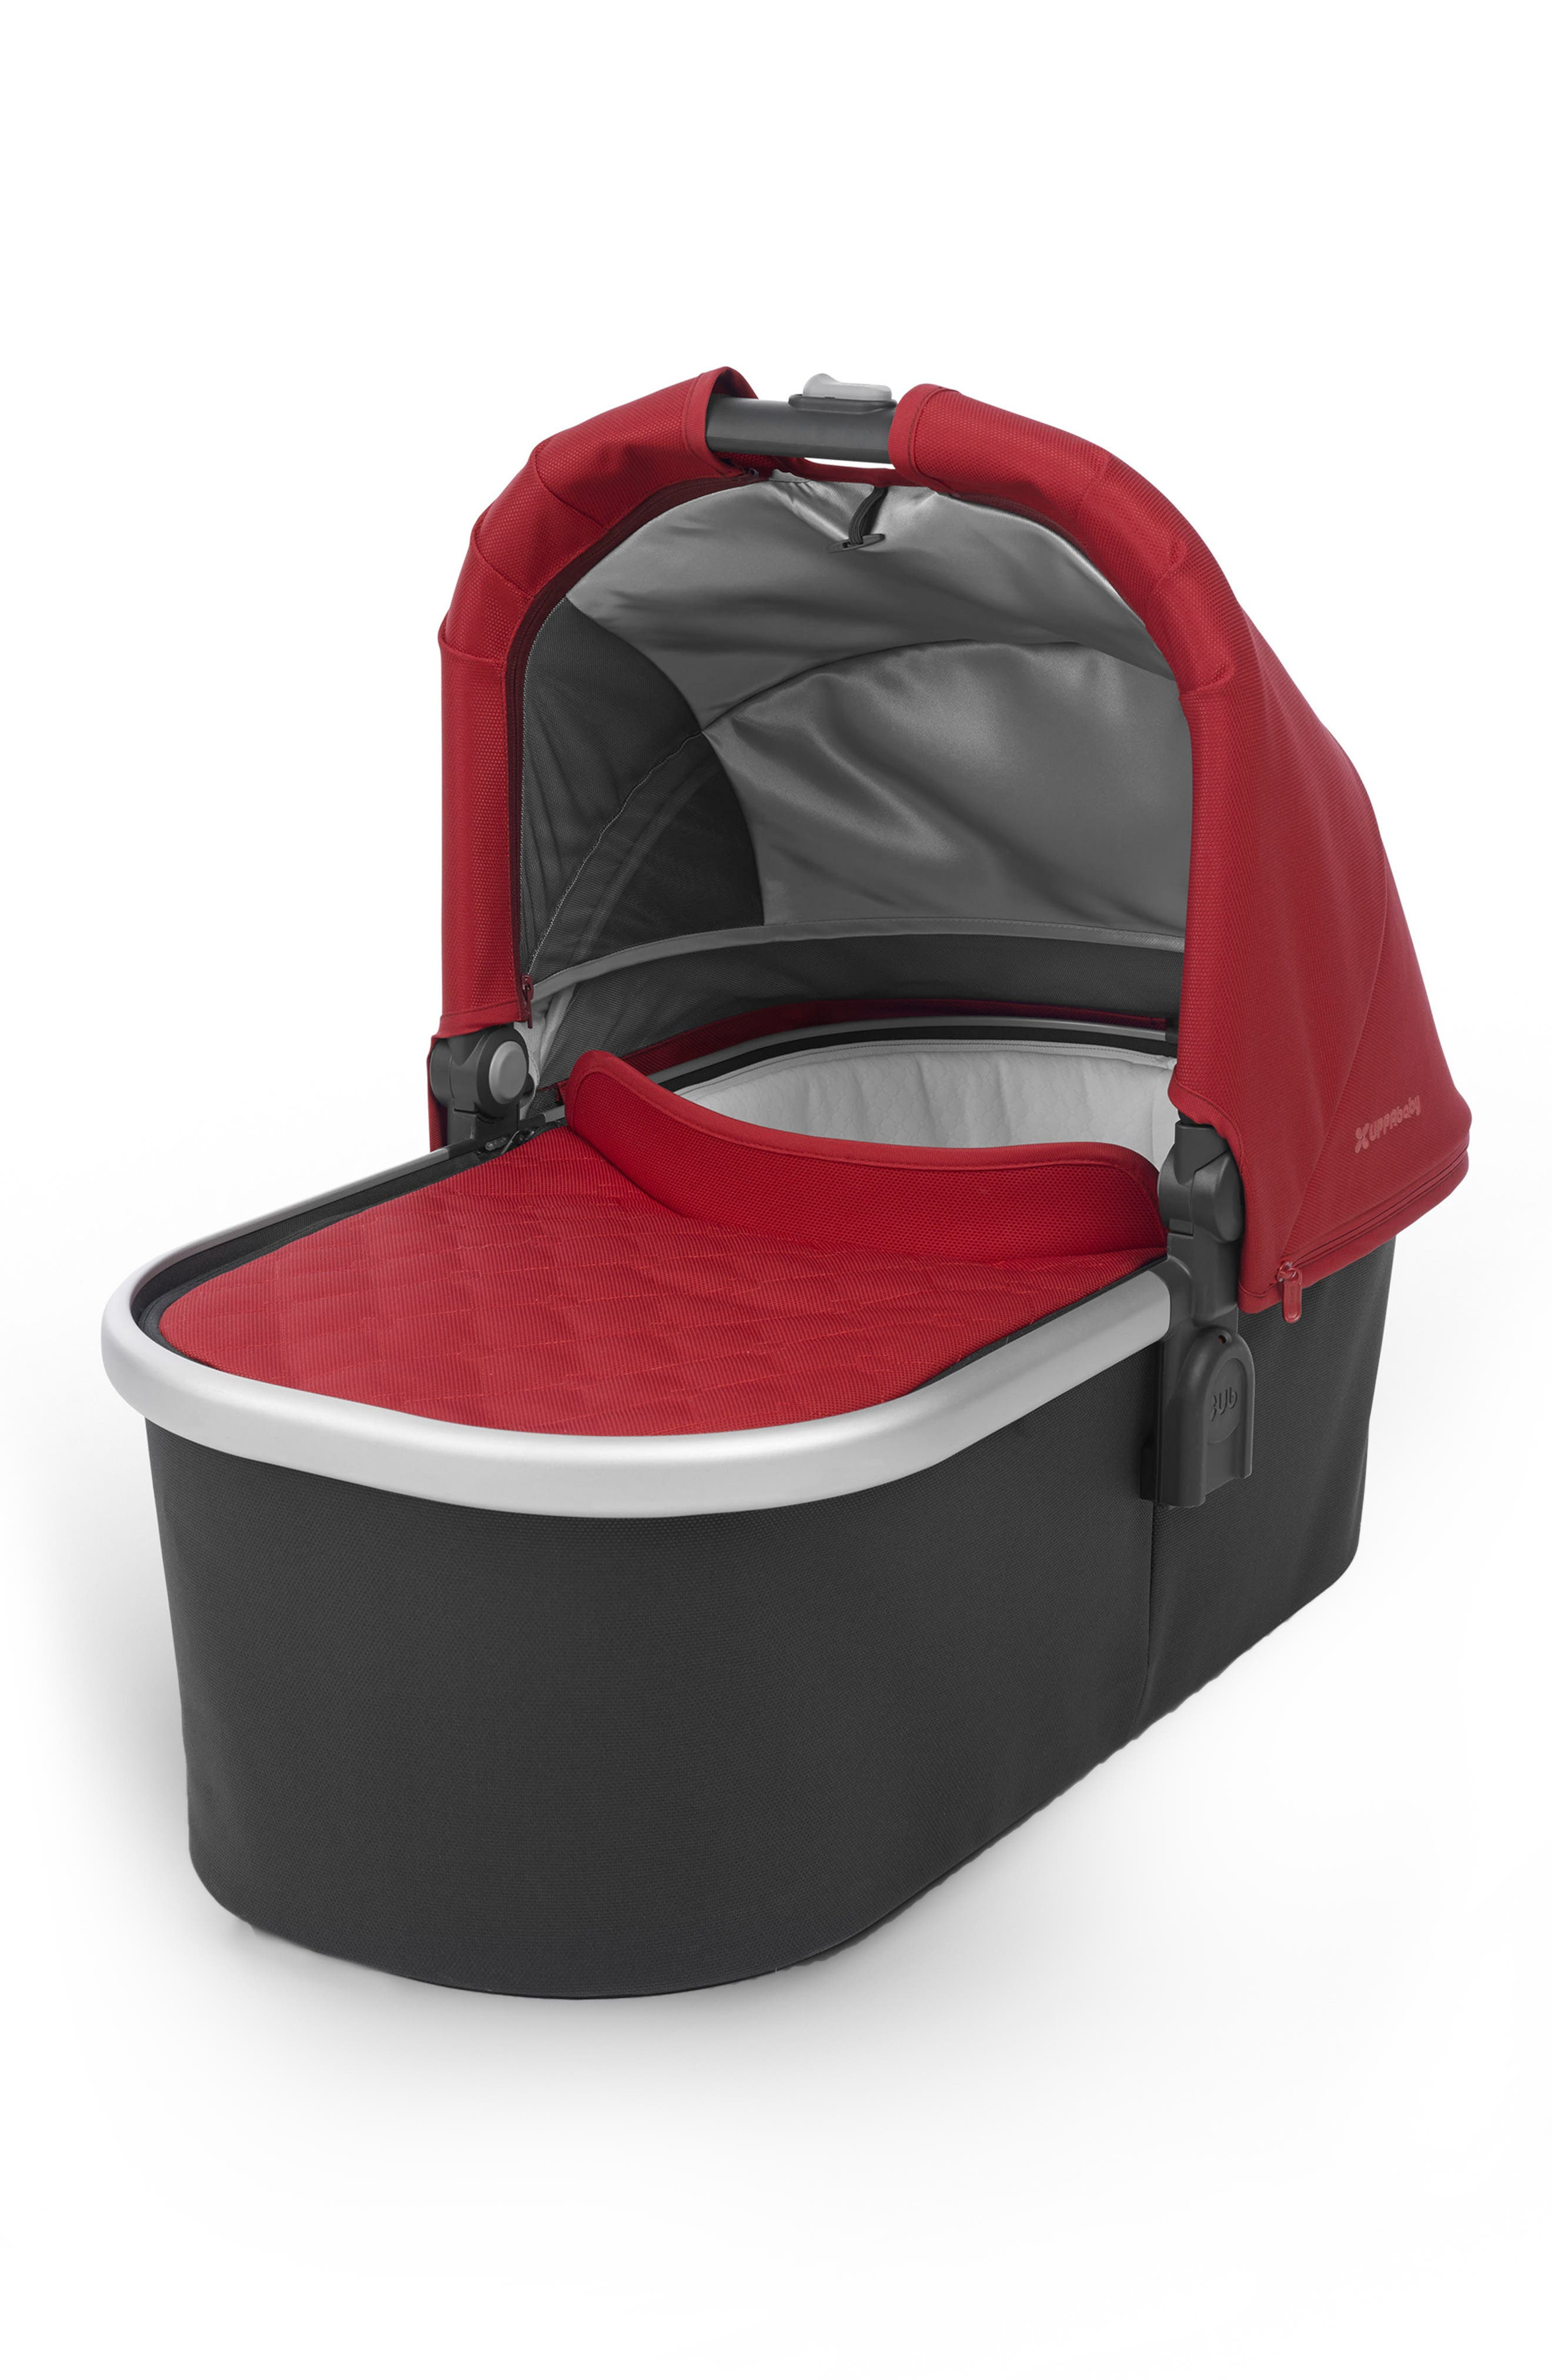 Main Image - UPPAbaby 2018 Bassinet for CRUZ or VISTA Strollers